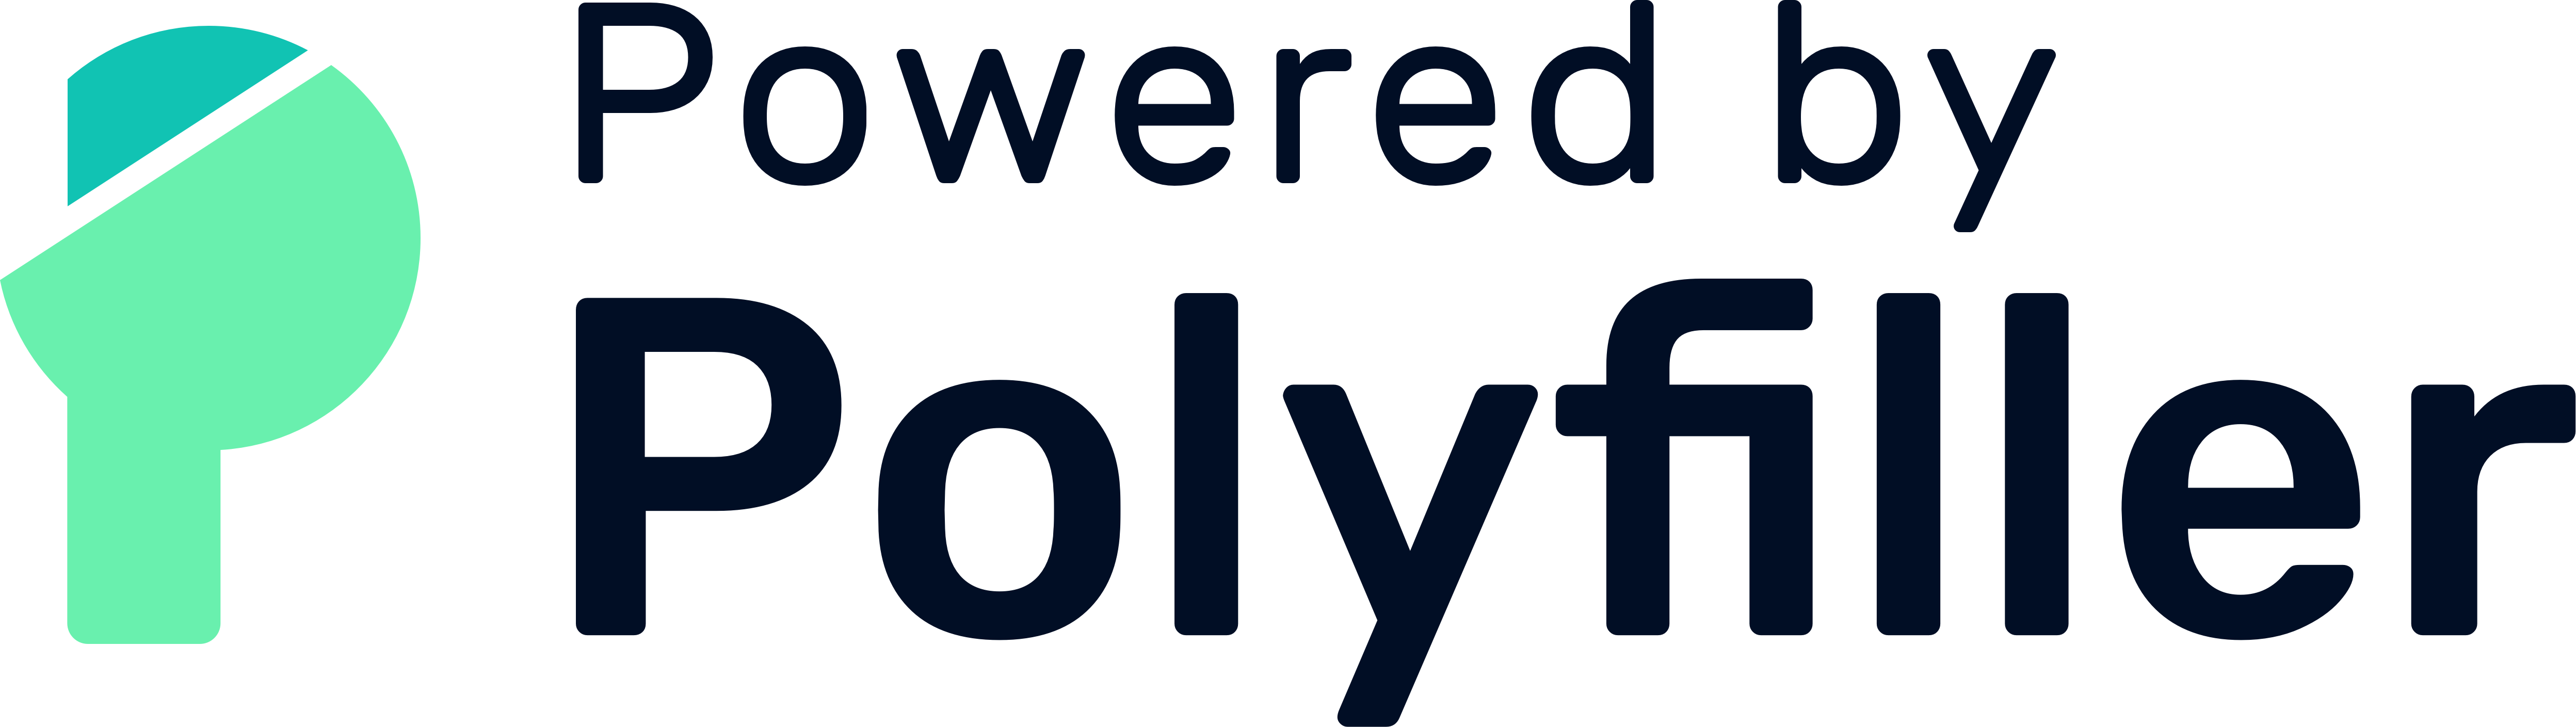 Powered by Polyfiller